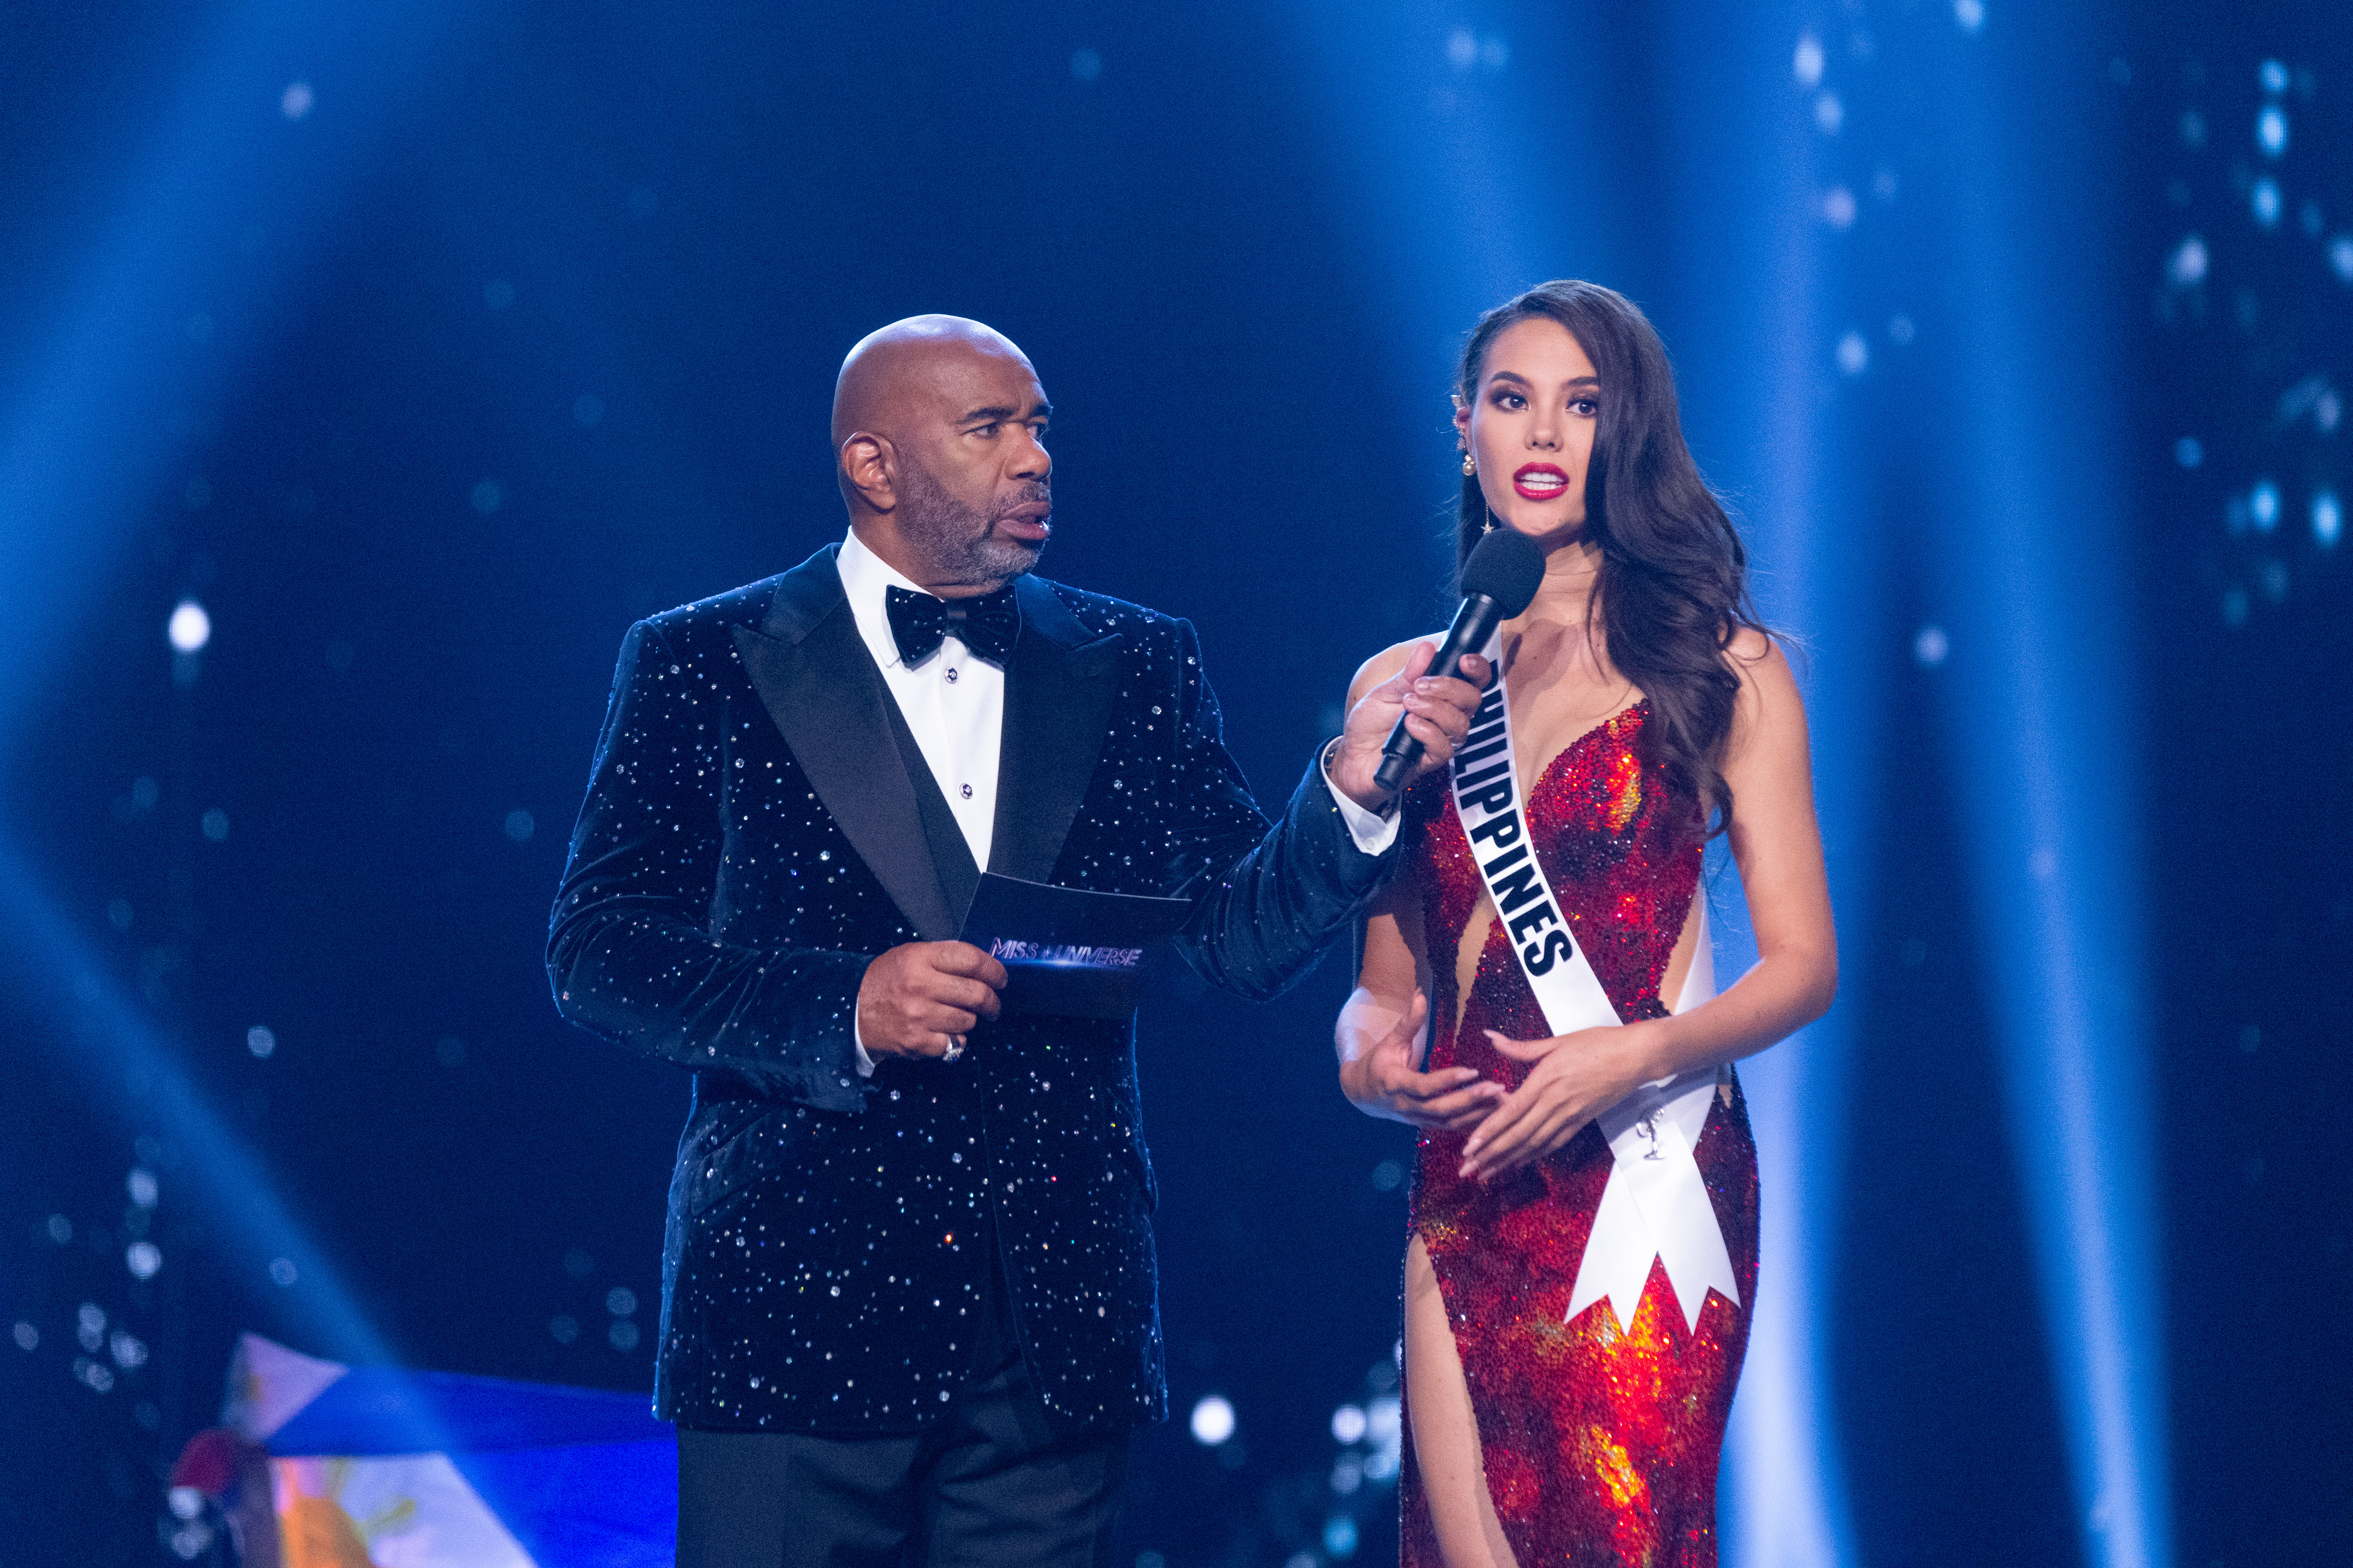 FINAL QUESTION. Catriona Gray, Miss Philippines 2018 answers her Final Word on stage with host Steve Harvey. Photo by the Miss Universe Organization